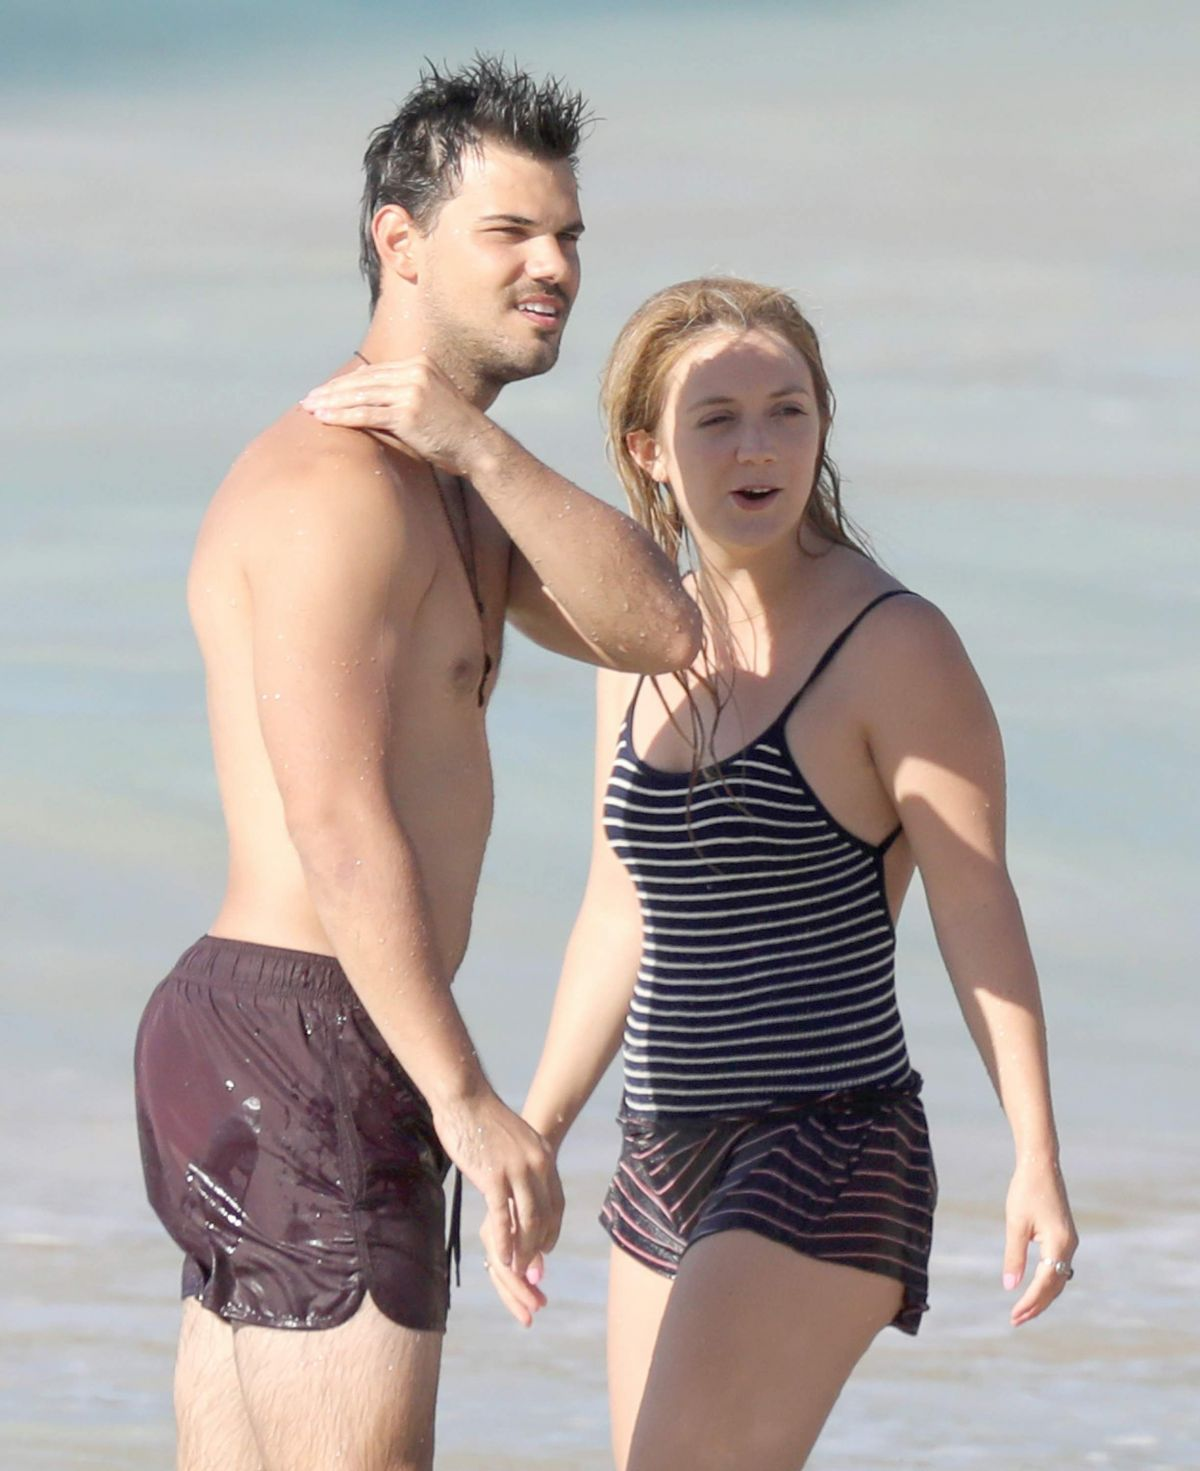 Billie Lourd And Taylor Lautner At A Beach In St Barts 04